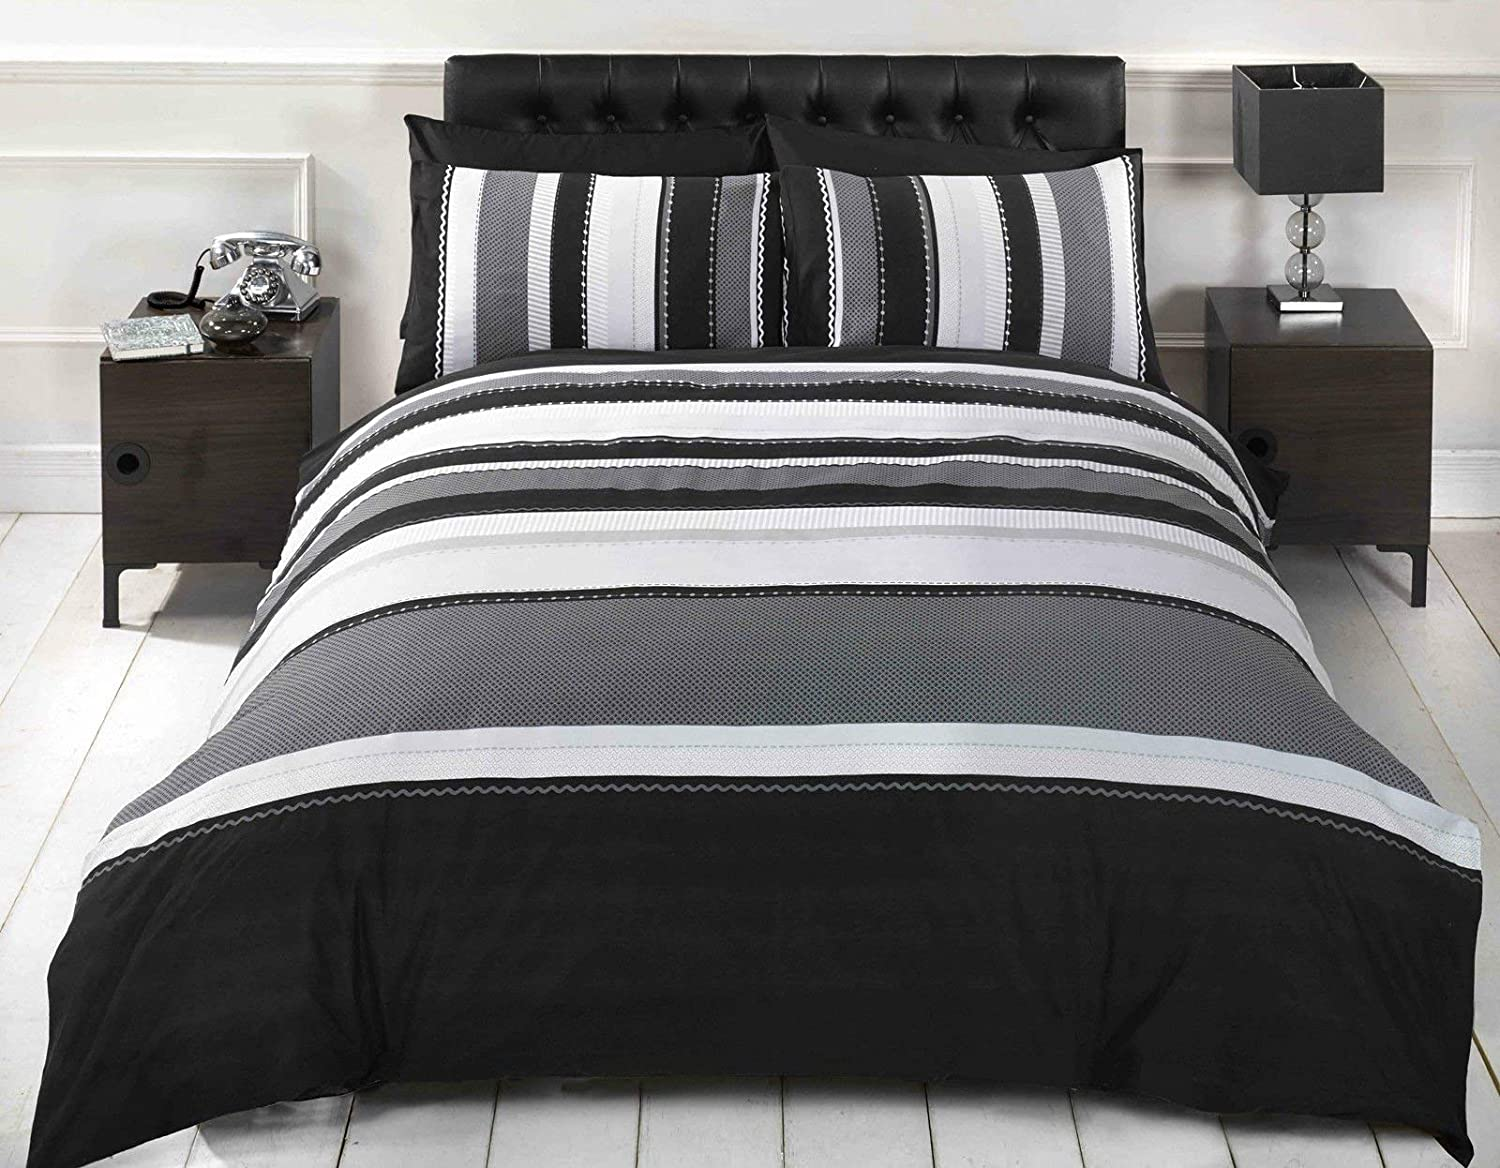 Signature Striped Grey King Quilt Duvet Cover & 2 Pillowcase Bed Set Adults Teenagers, Cotton and Polyester